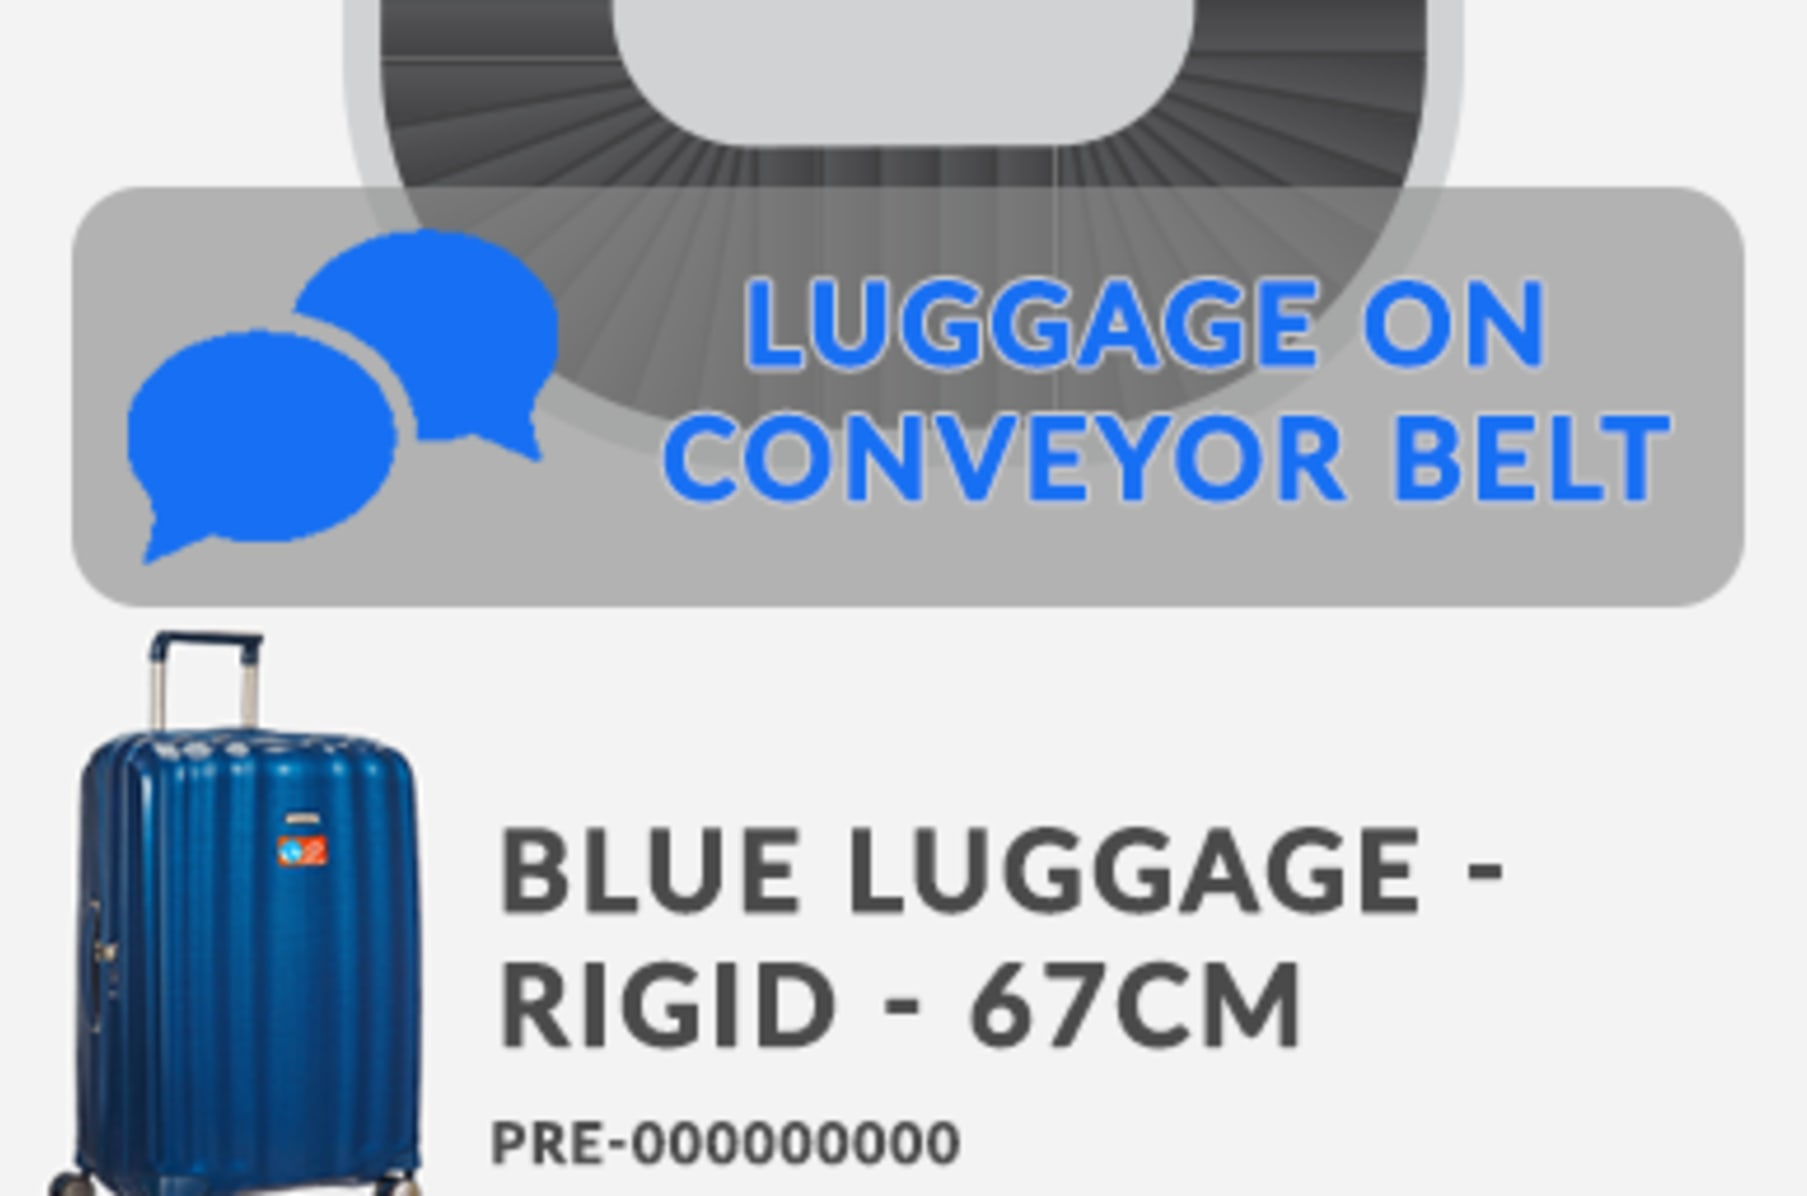 Bluetooth technology NFC It embeds RFID The Smart Luggage Tracker